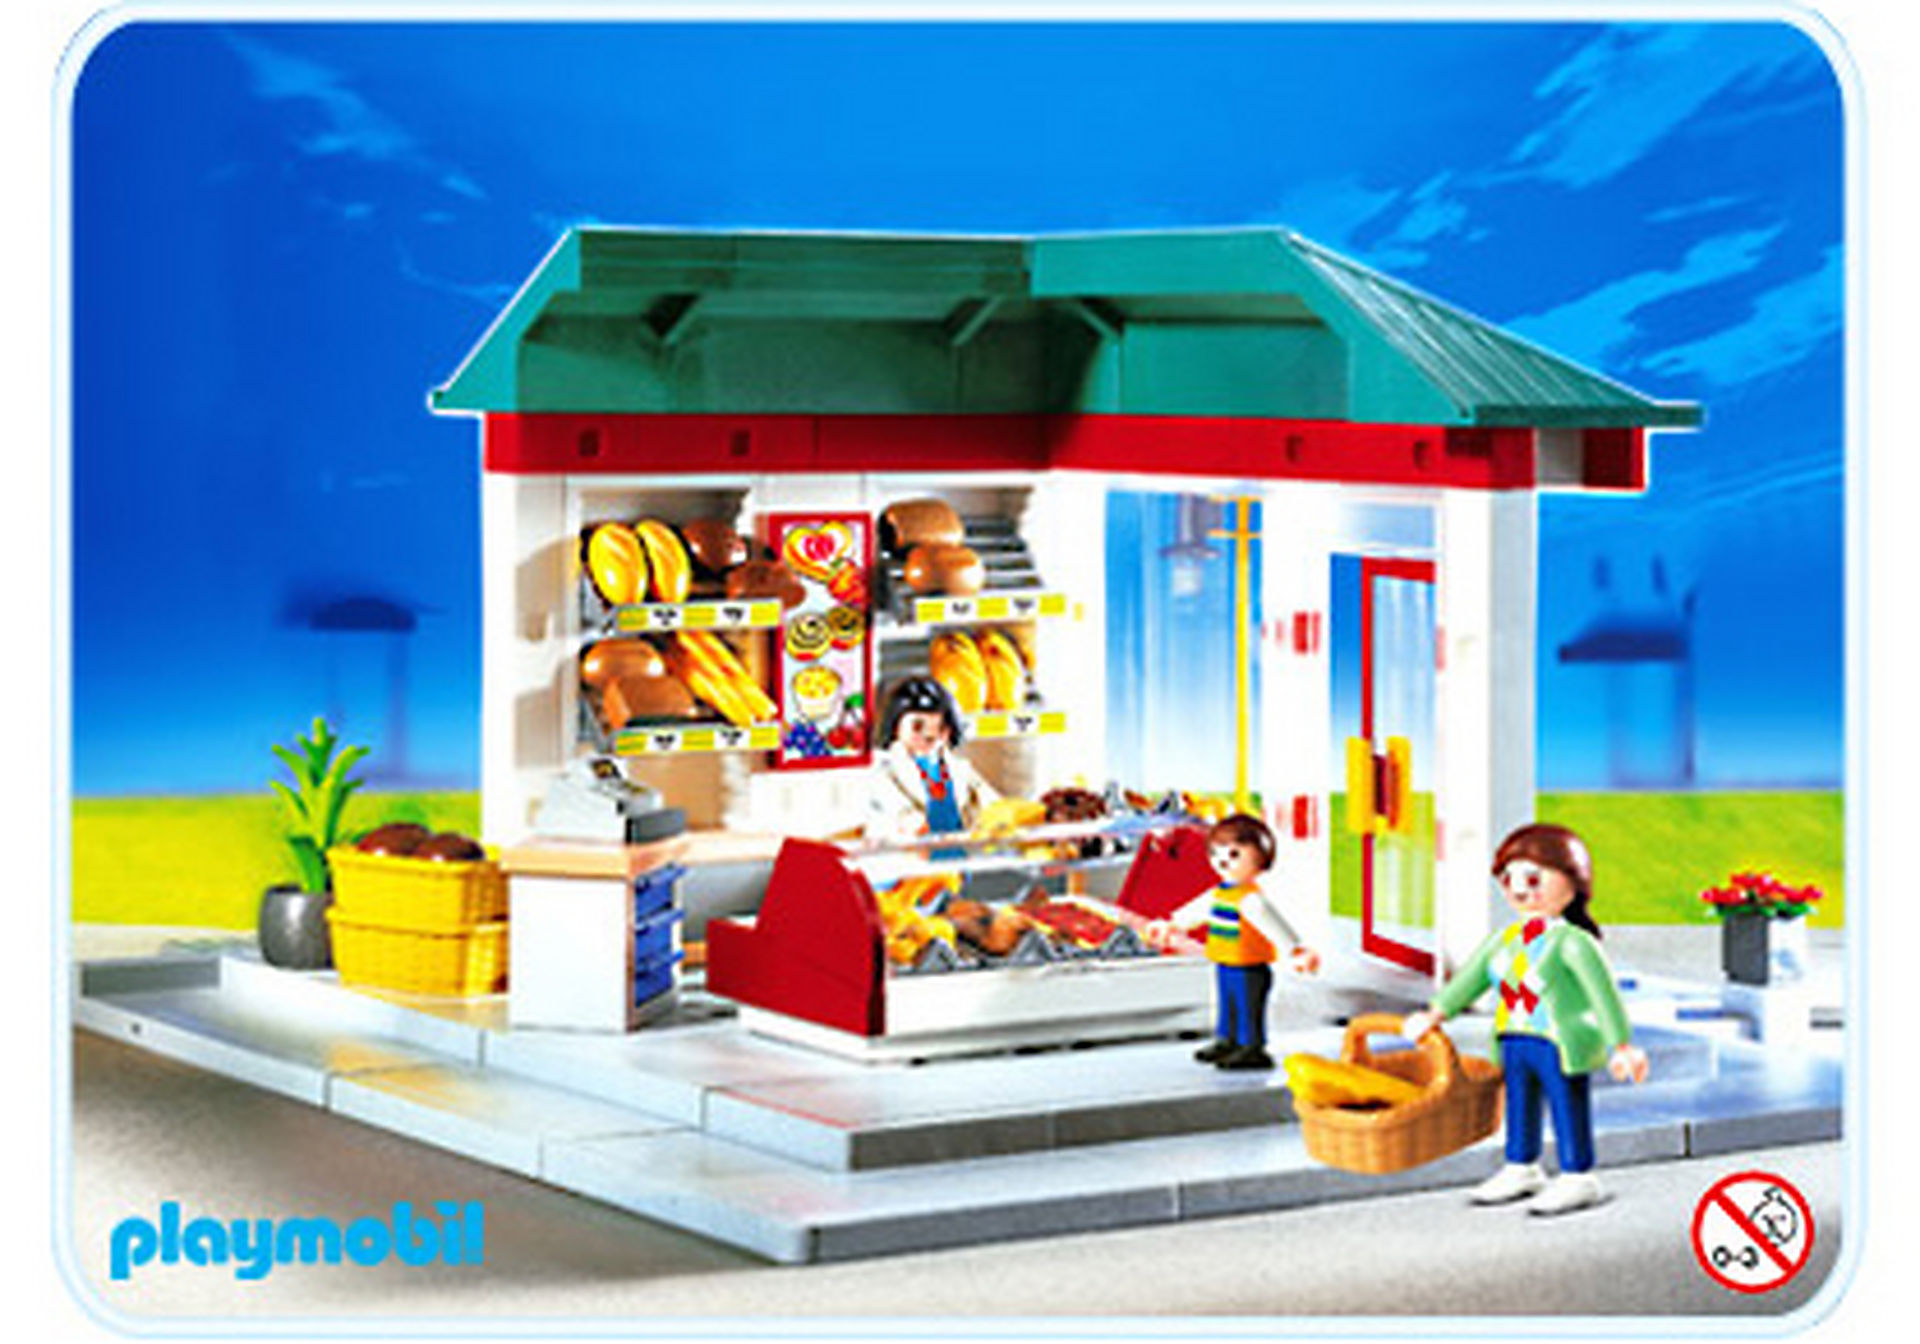 http://media.playmobil.com/i/playmobil/4410-A_product_detail/Bäckerei